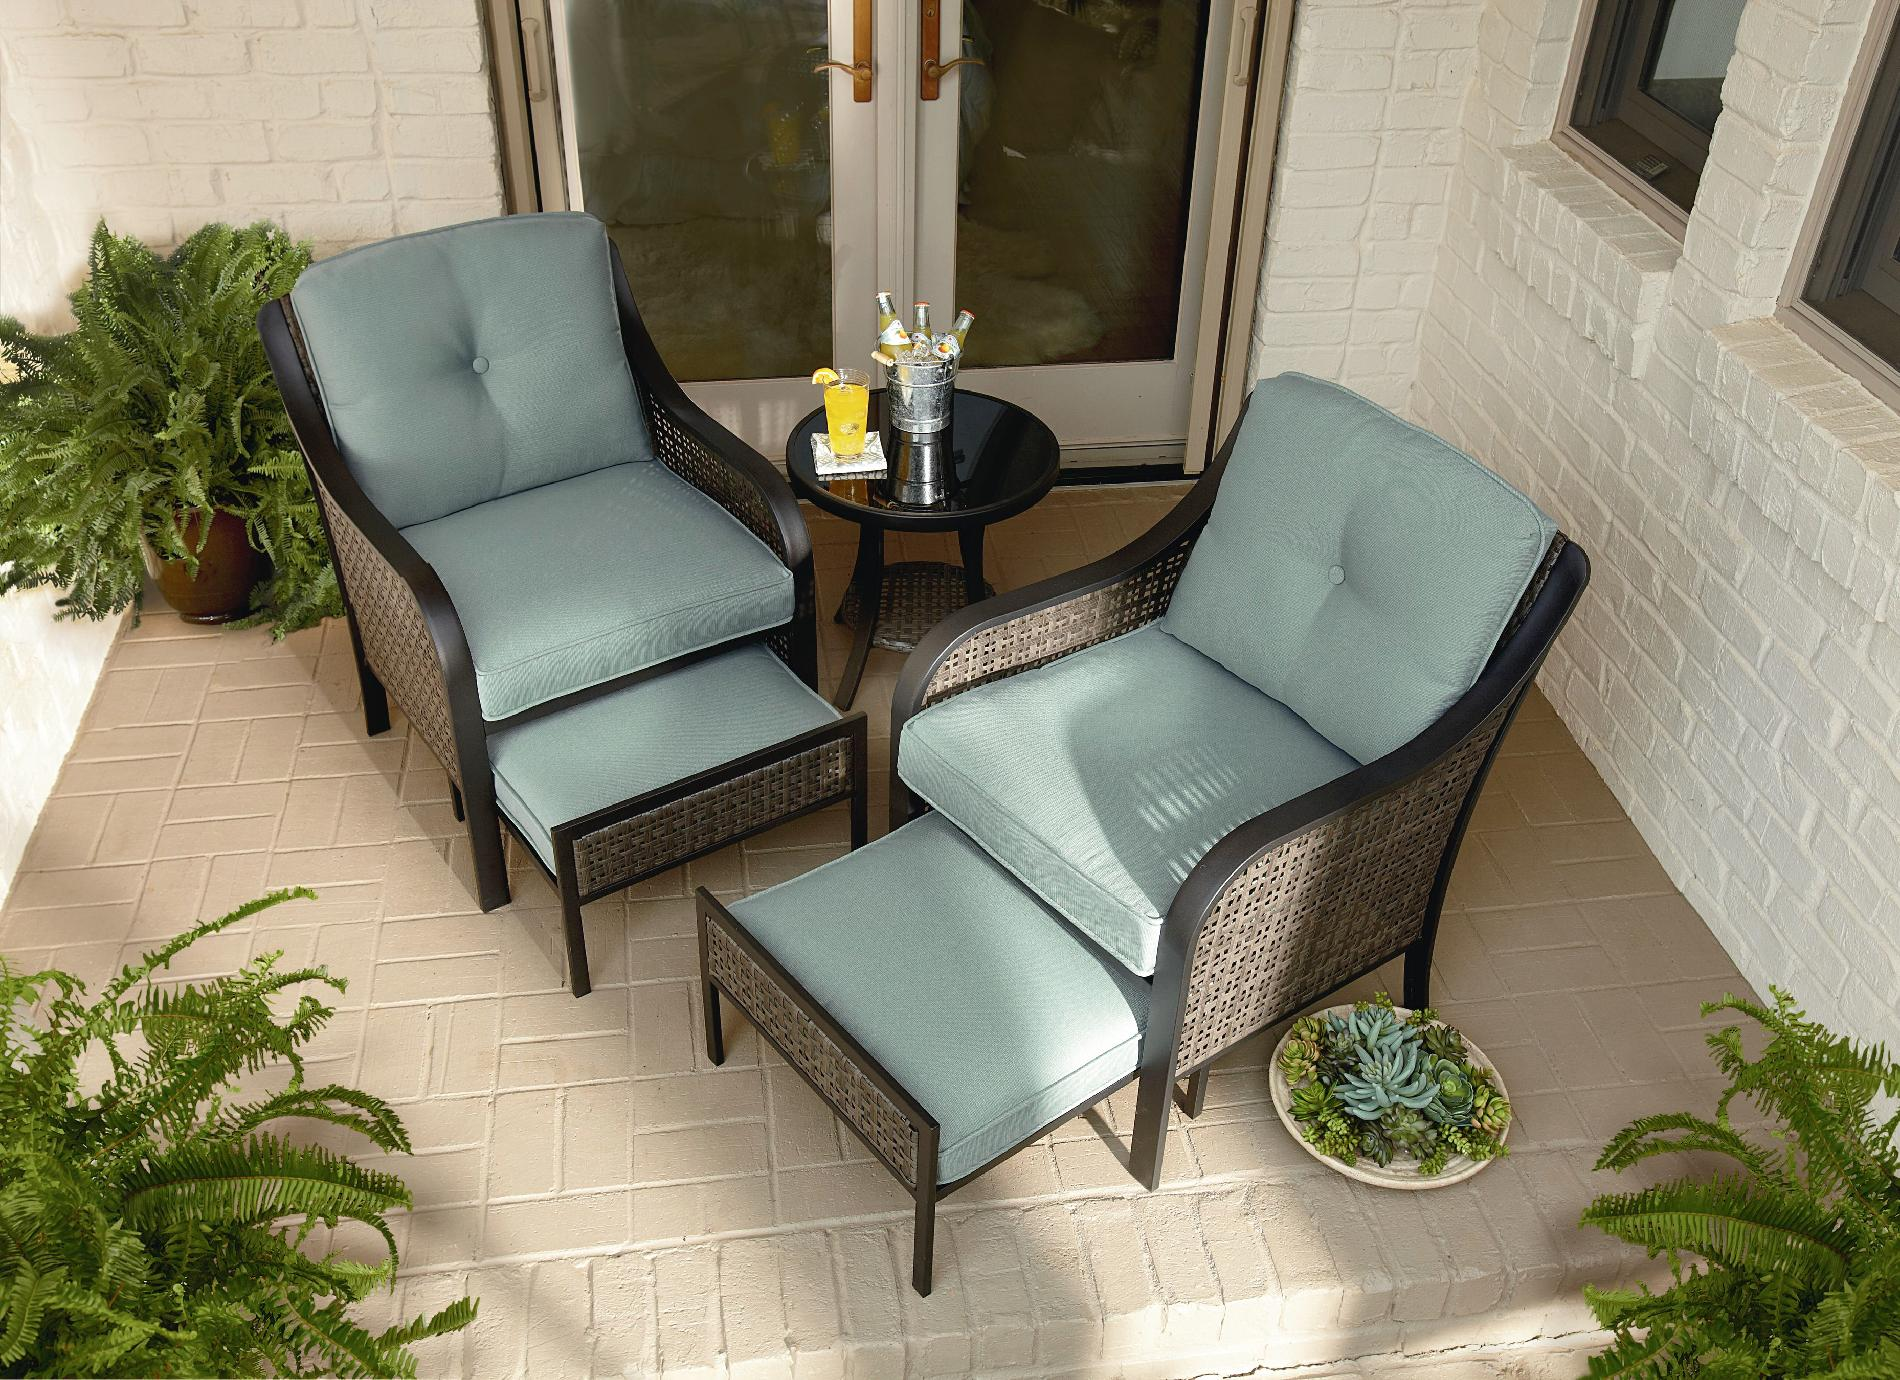 Patio Chairs With Ottoman Garden Oasis Nichols 5pc Mixed Media Seating With Pull Out